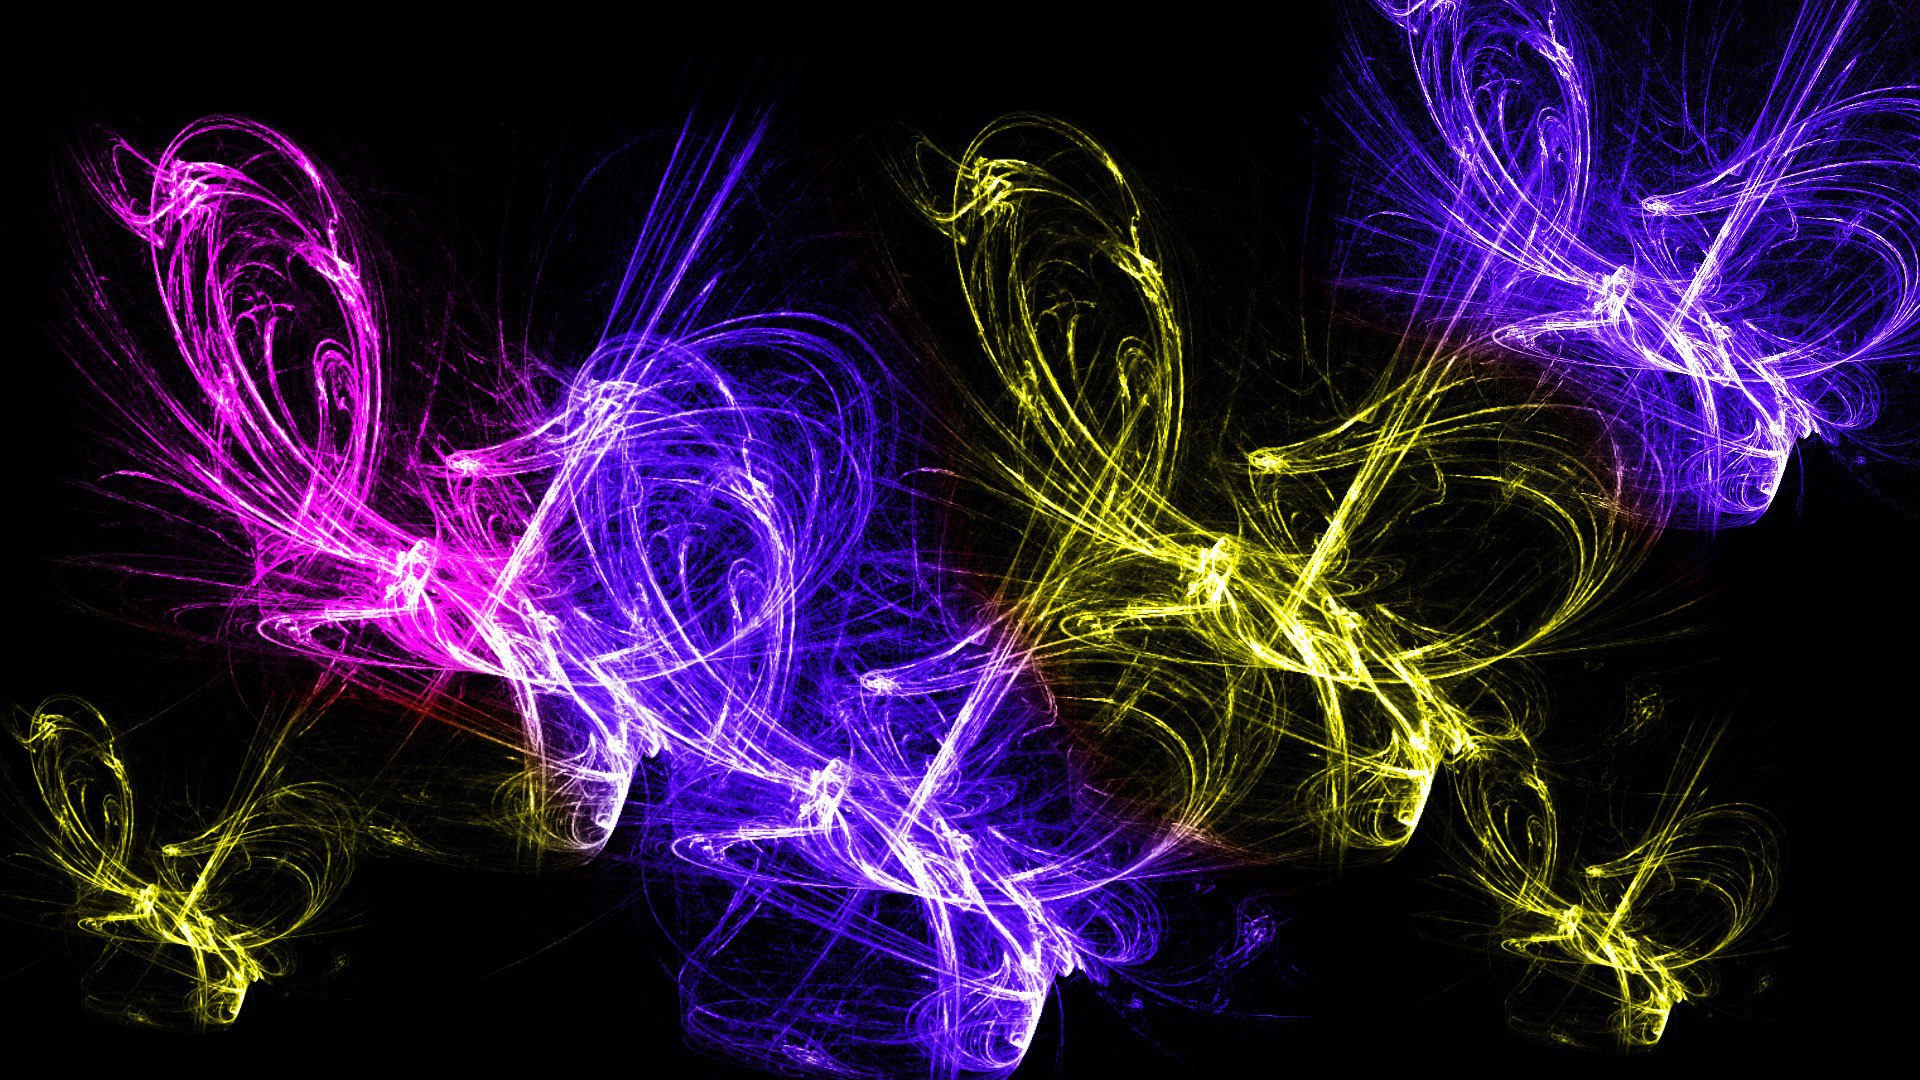 Photoshop Background Wallpaper Abstract photoshop images 1920x1080